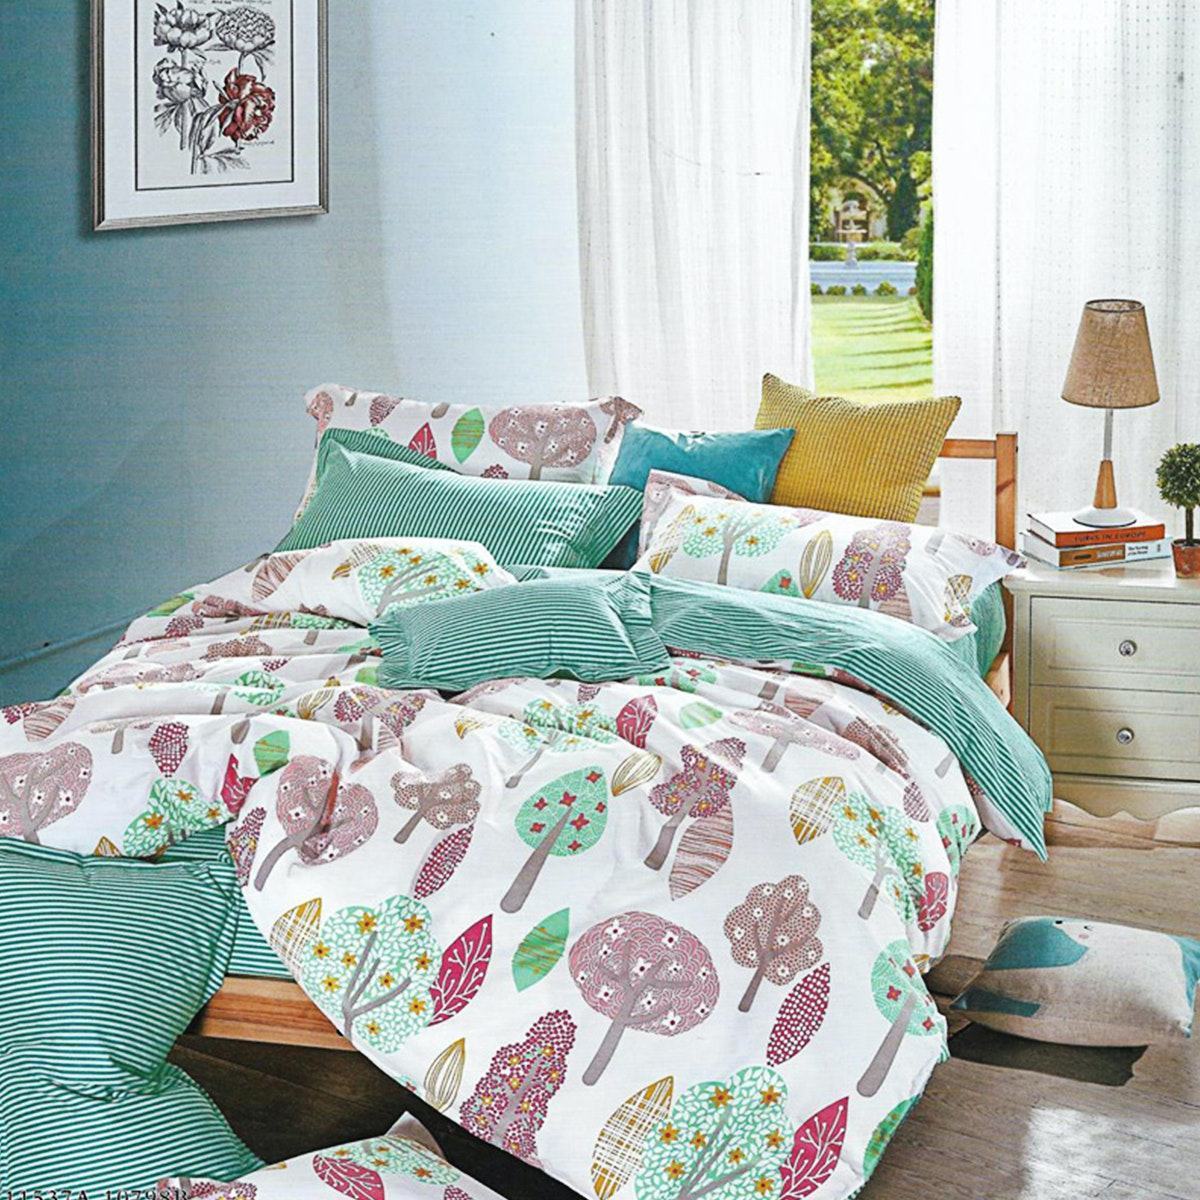 Sleep Buddy Set Sprei dan Bed Cover Greeny Garden Cotton Sateen 120x200x30